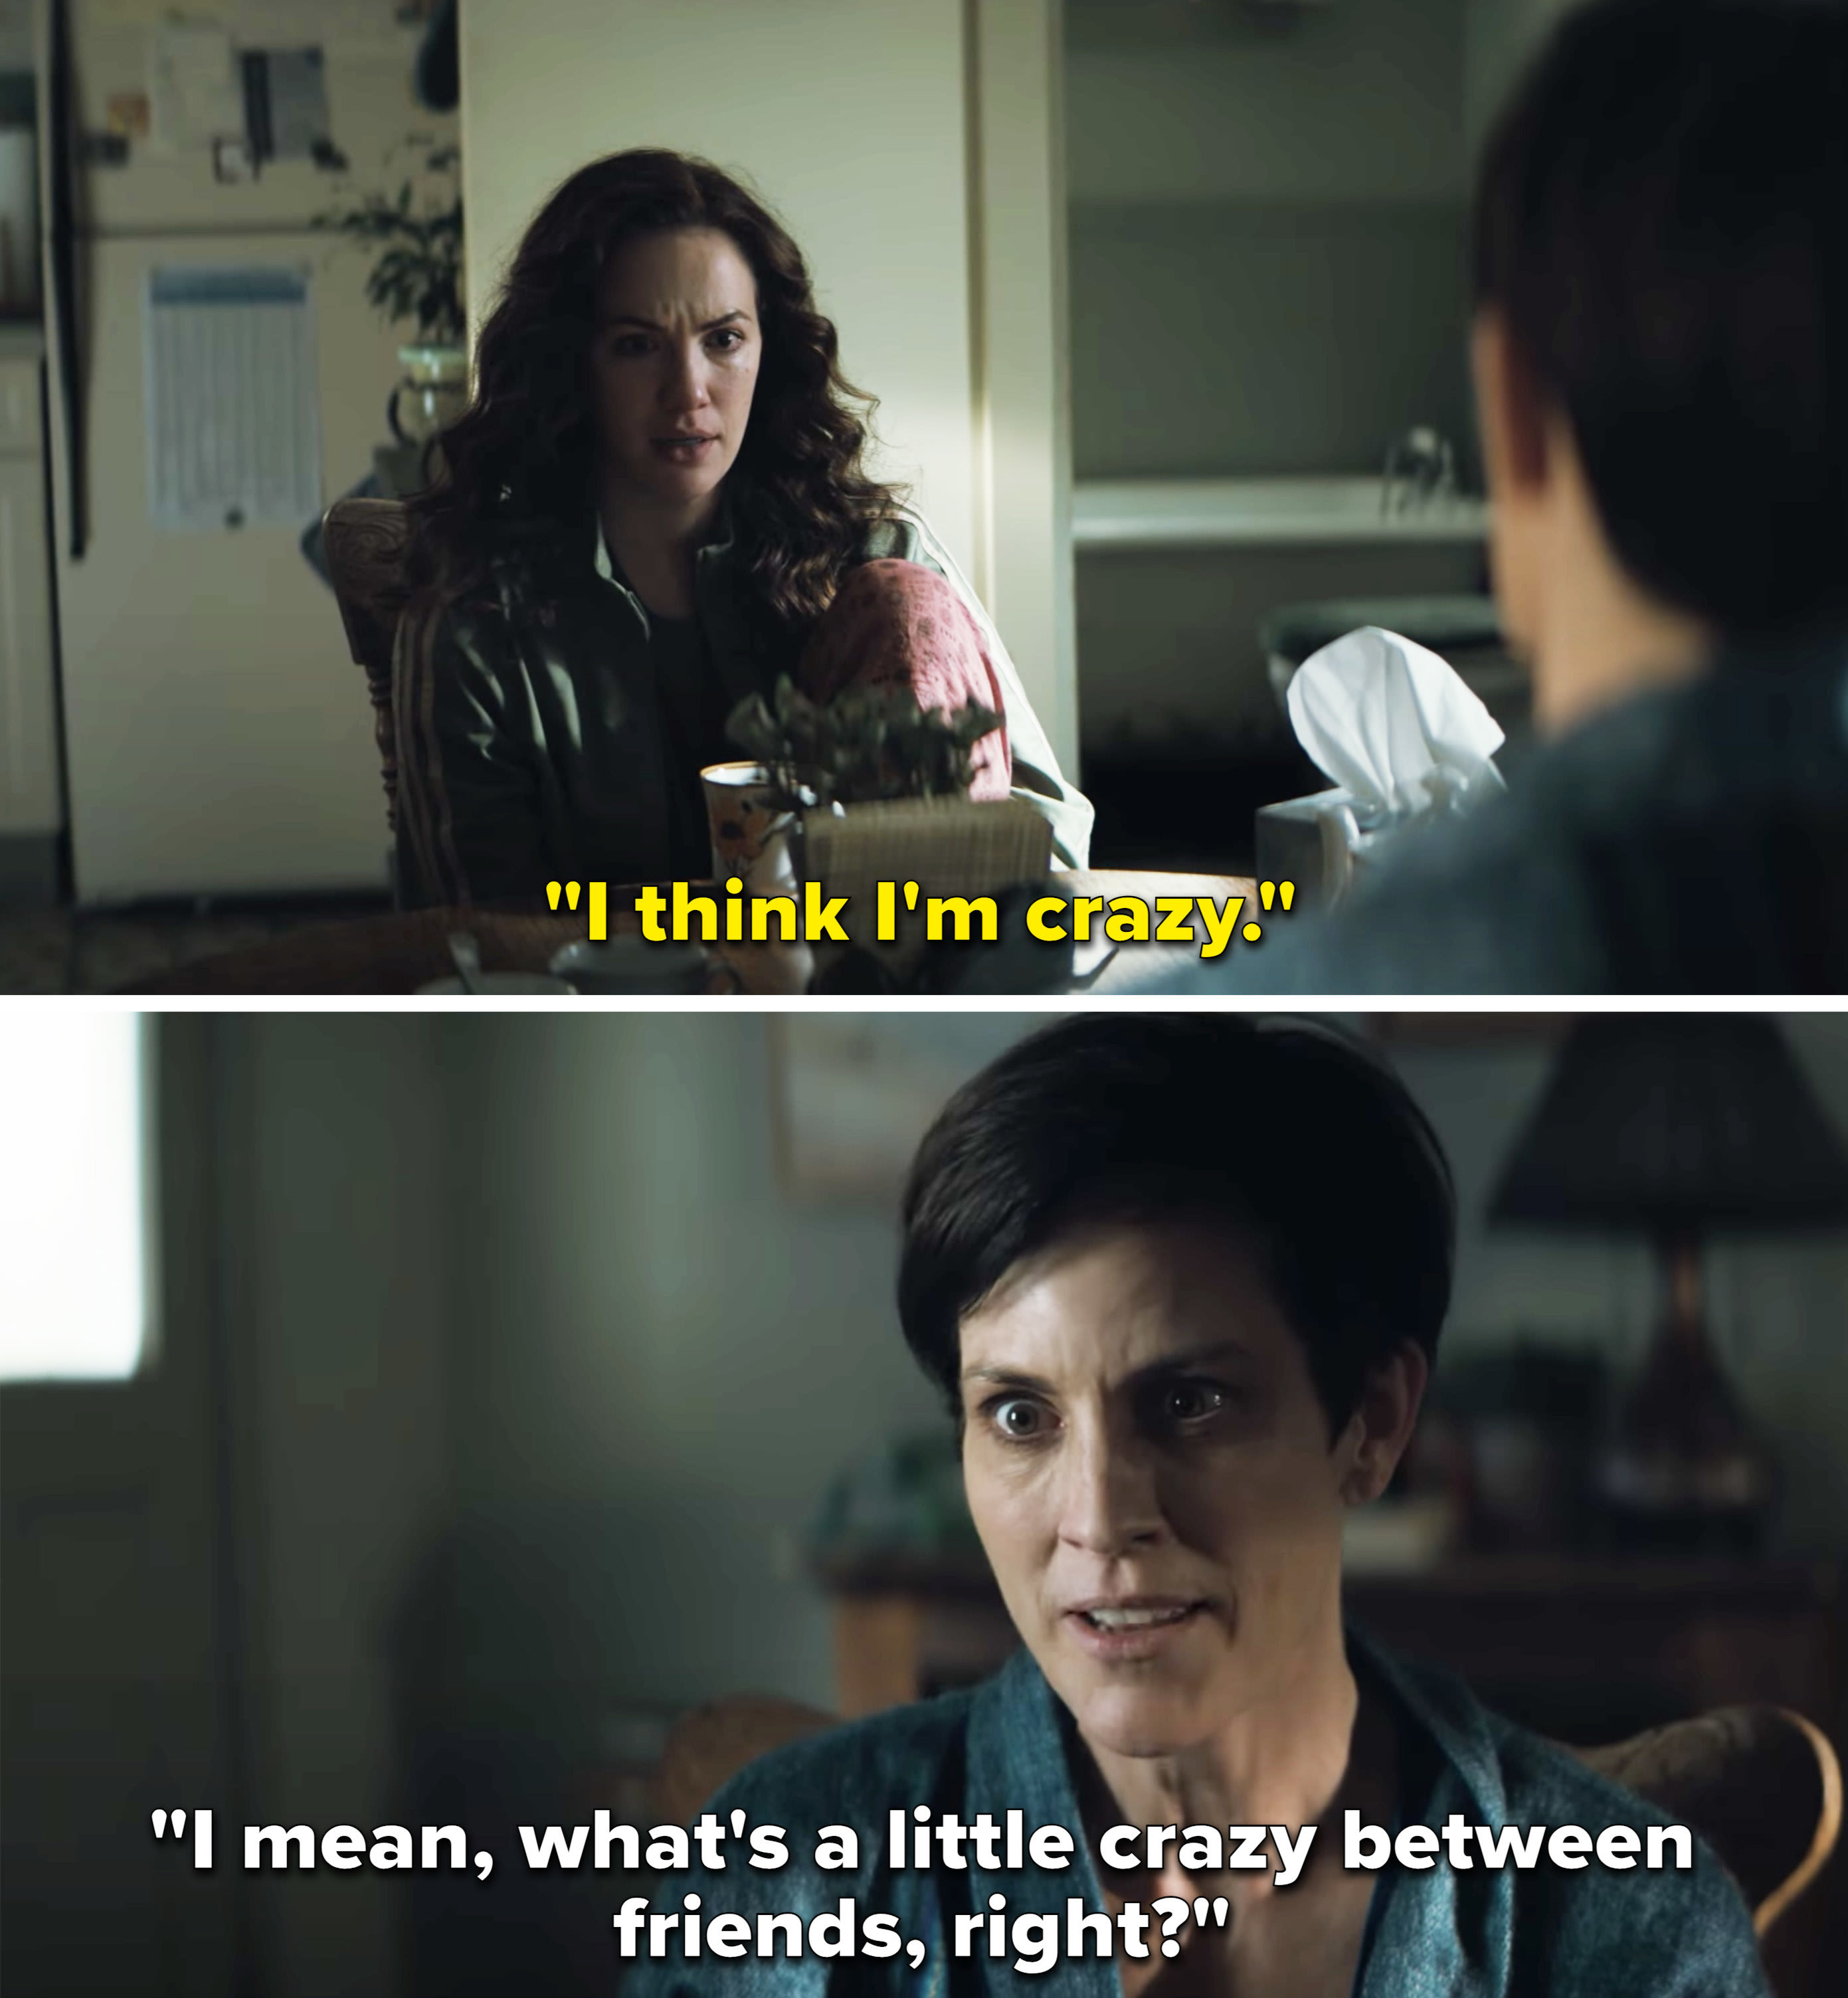 Two people discussing how one thinks she's crazy